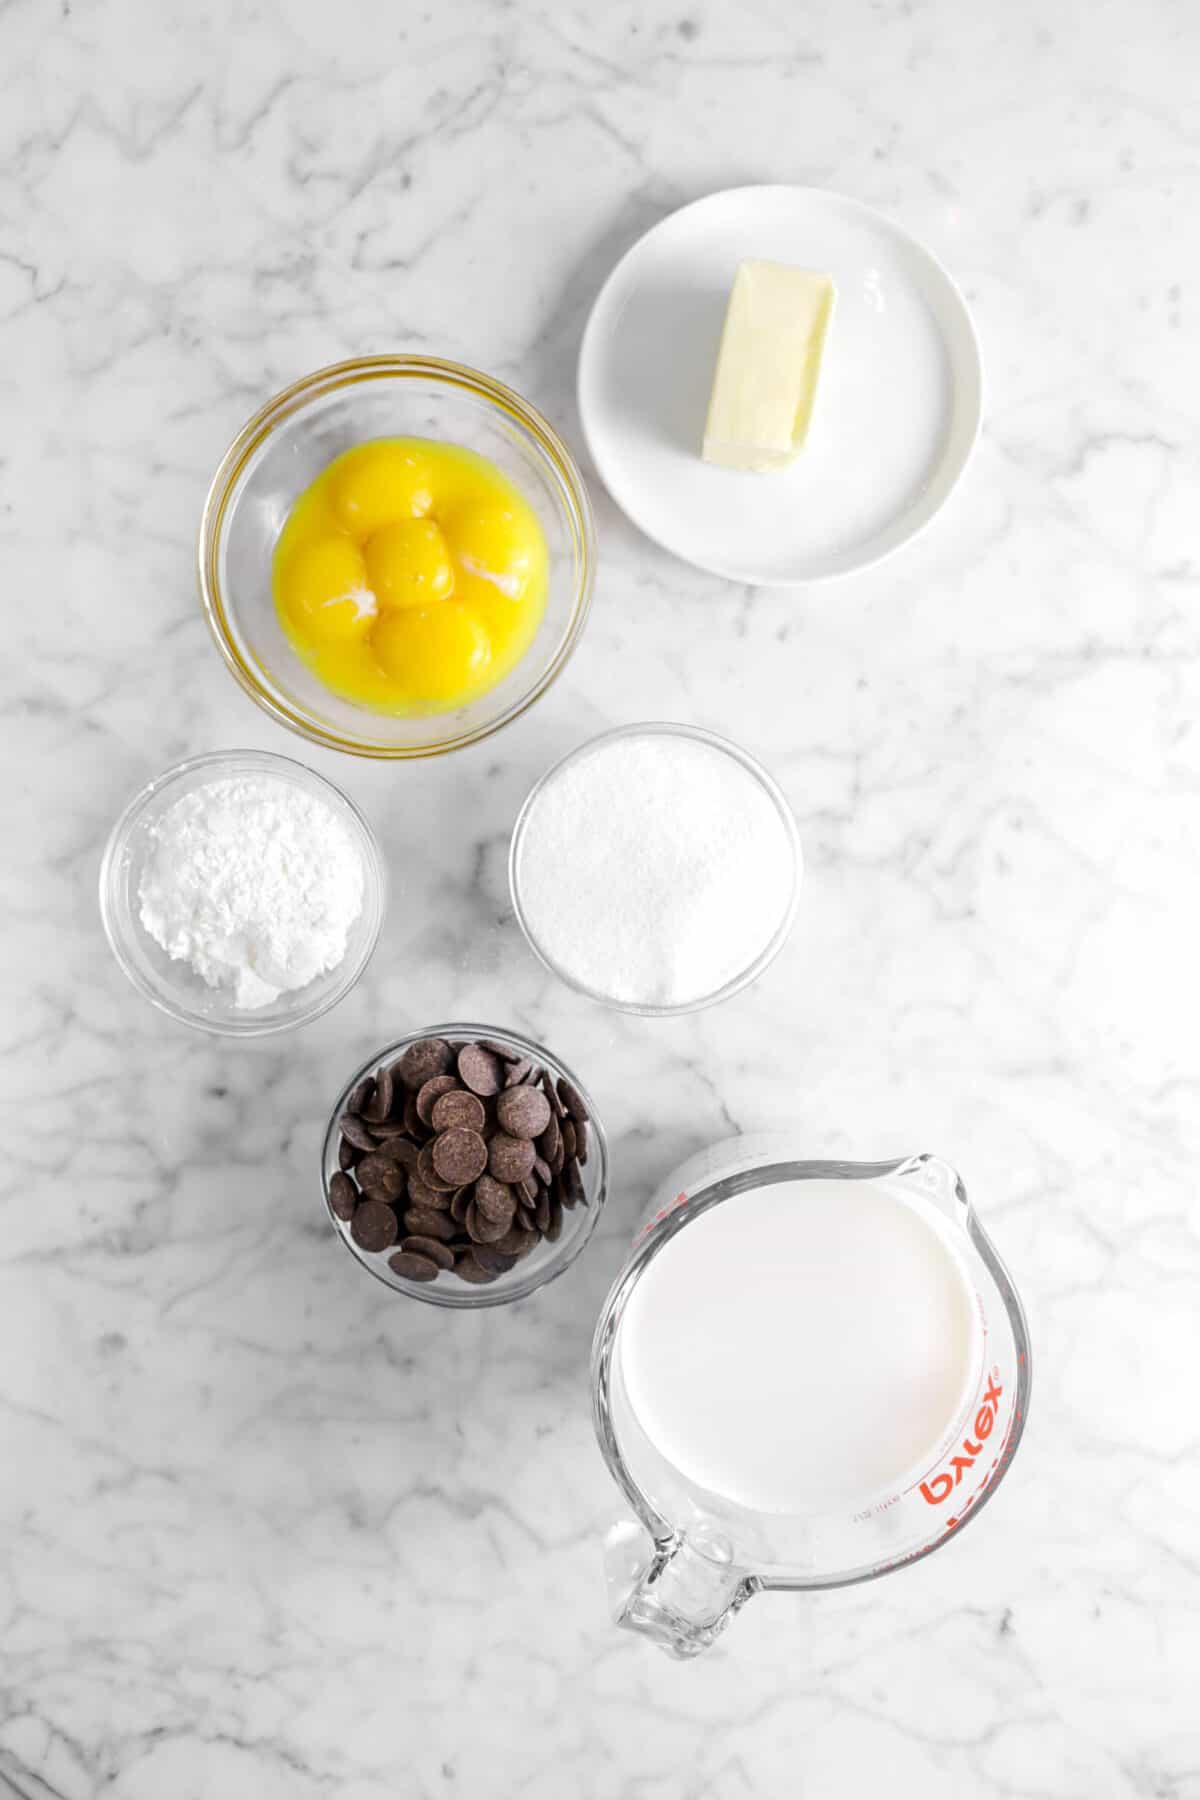 butter, egg yolks, sugar, corn starch, chocolate chips, and milk on marble counter